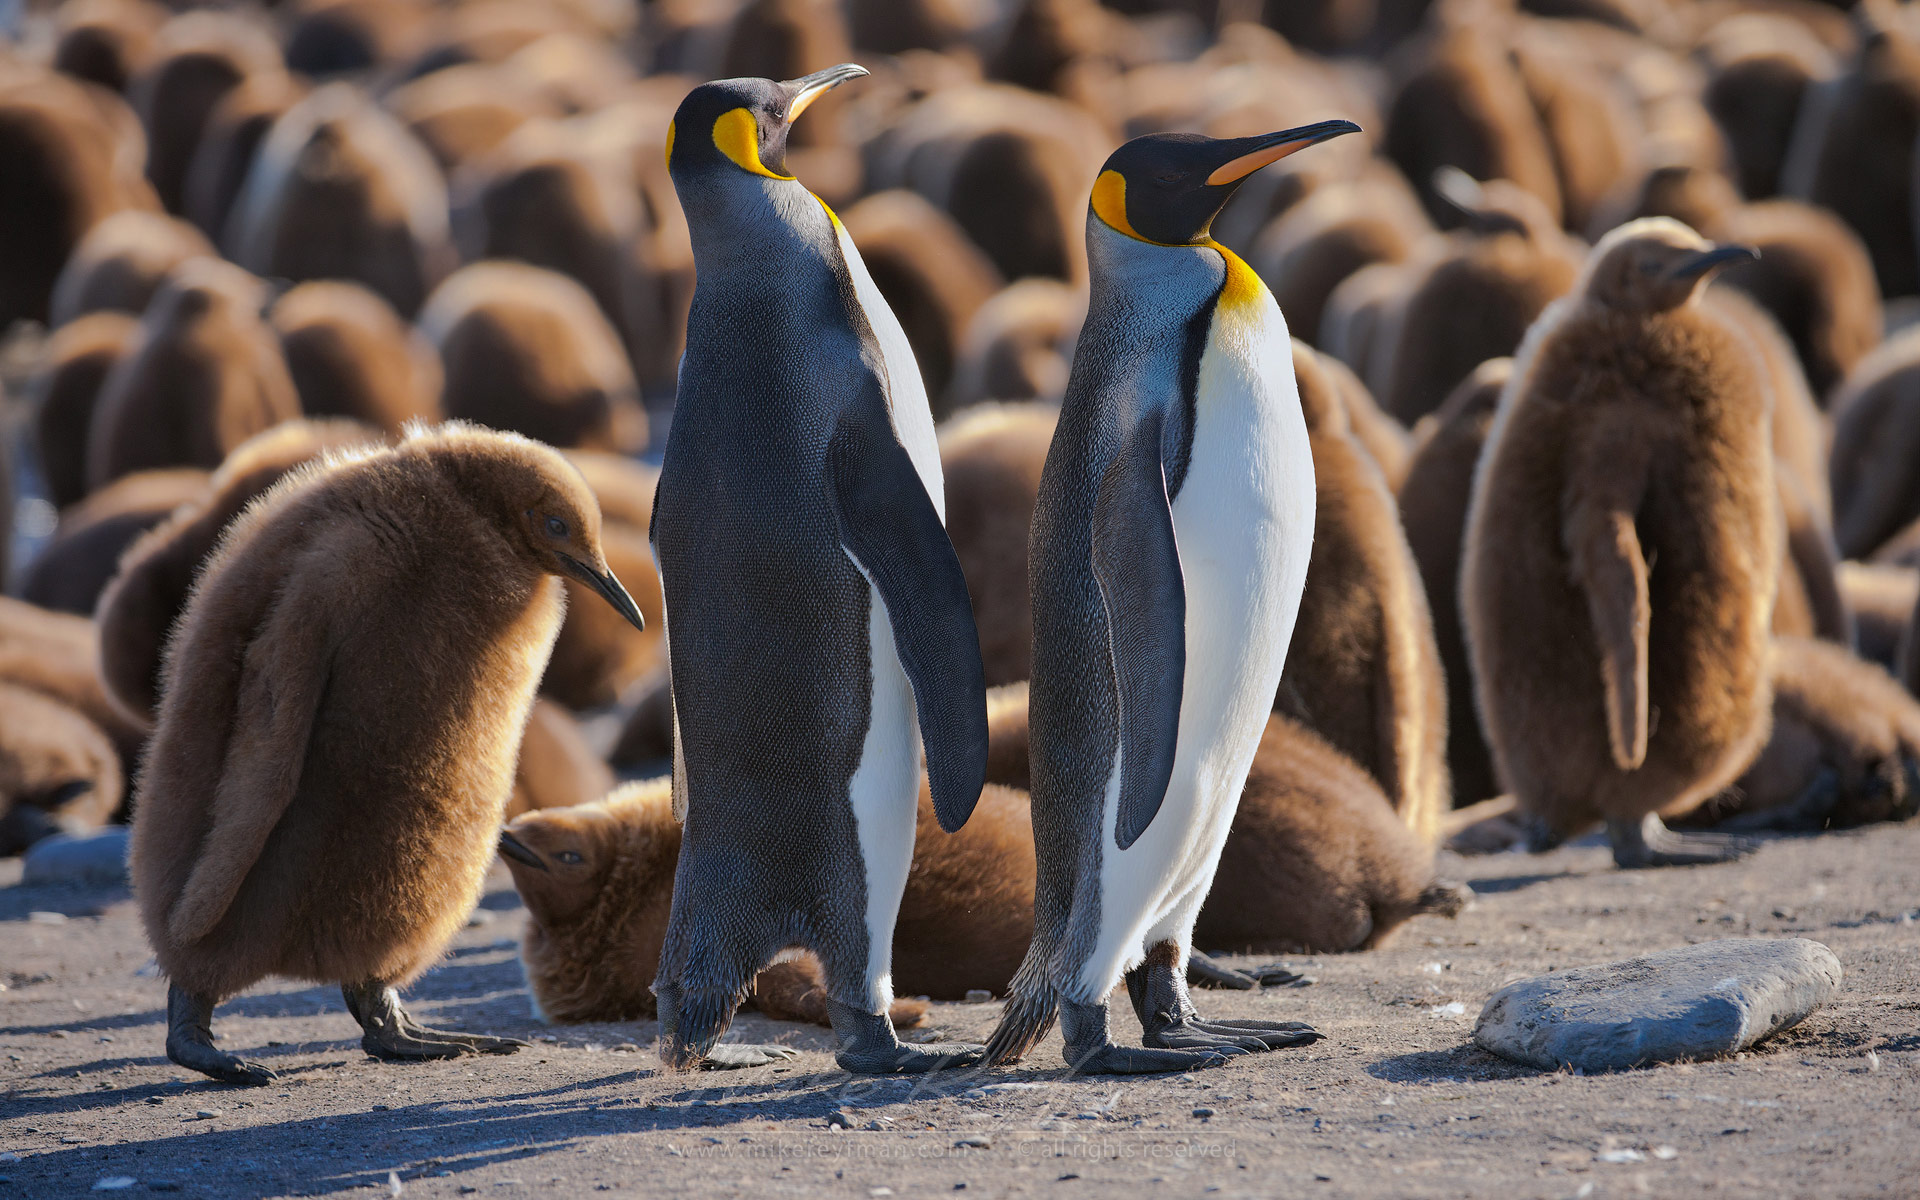 Stray Chick. King Penguin (Aptenodytes patagonicus) Creche. Saint Andrew's Bay, South Georgia, Sub-Antarctic - King-Penguin-Chicks-In-Creche-South-Georgia-Sub-Antarctic - Mike Reyfman Photography